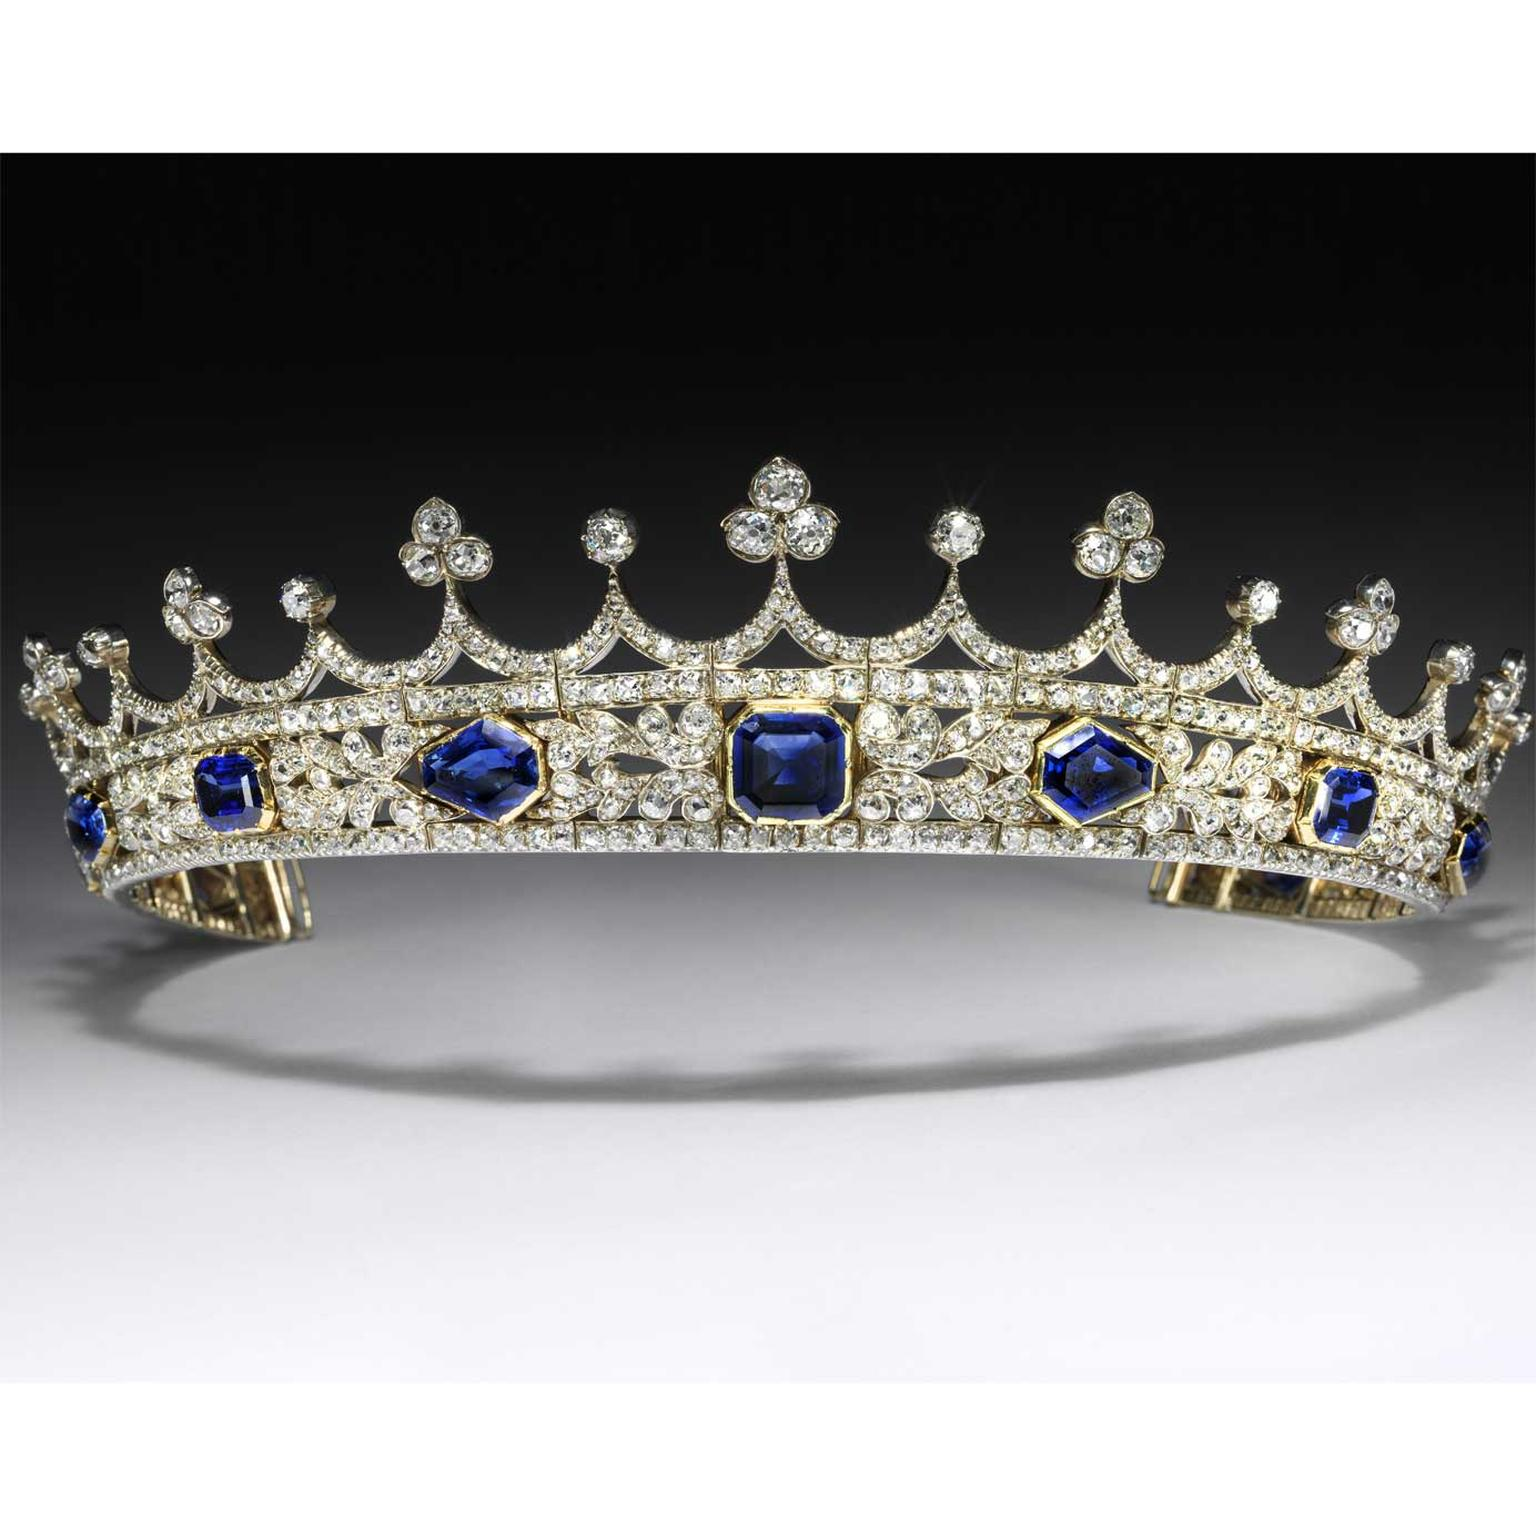 Newly Refurbished V&A showcases Queen Victoria's coronet